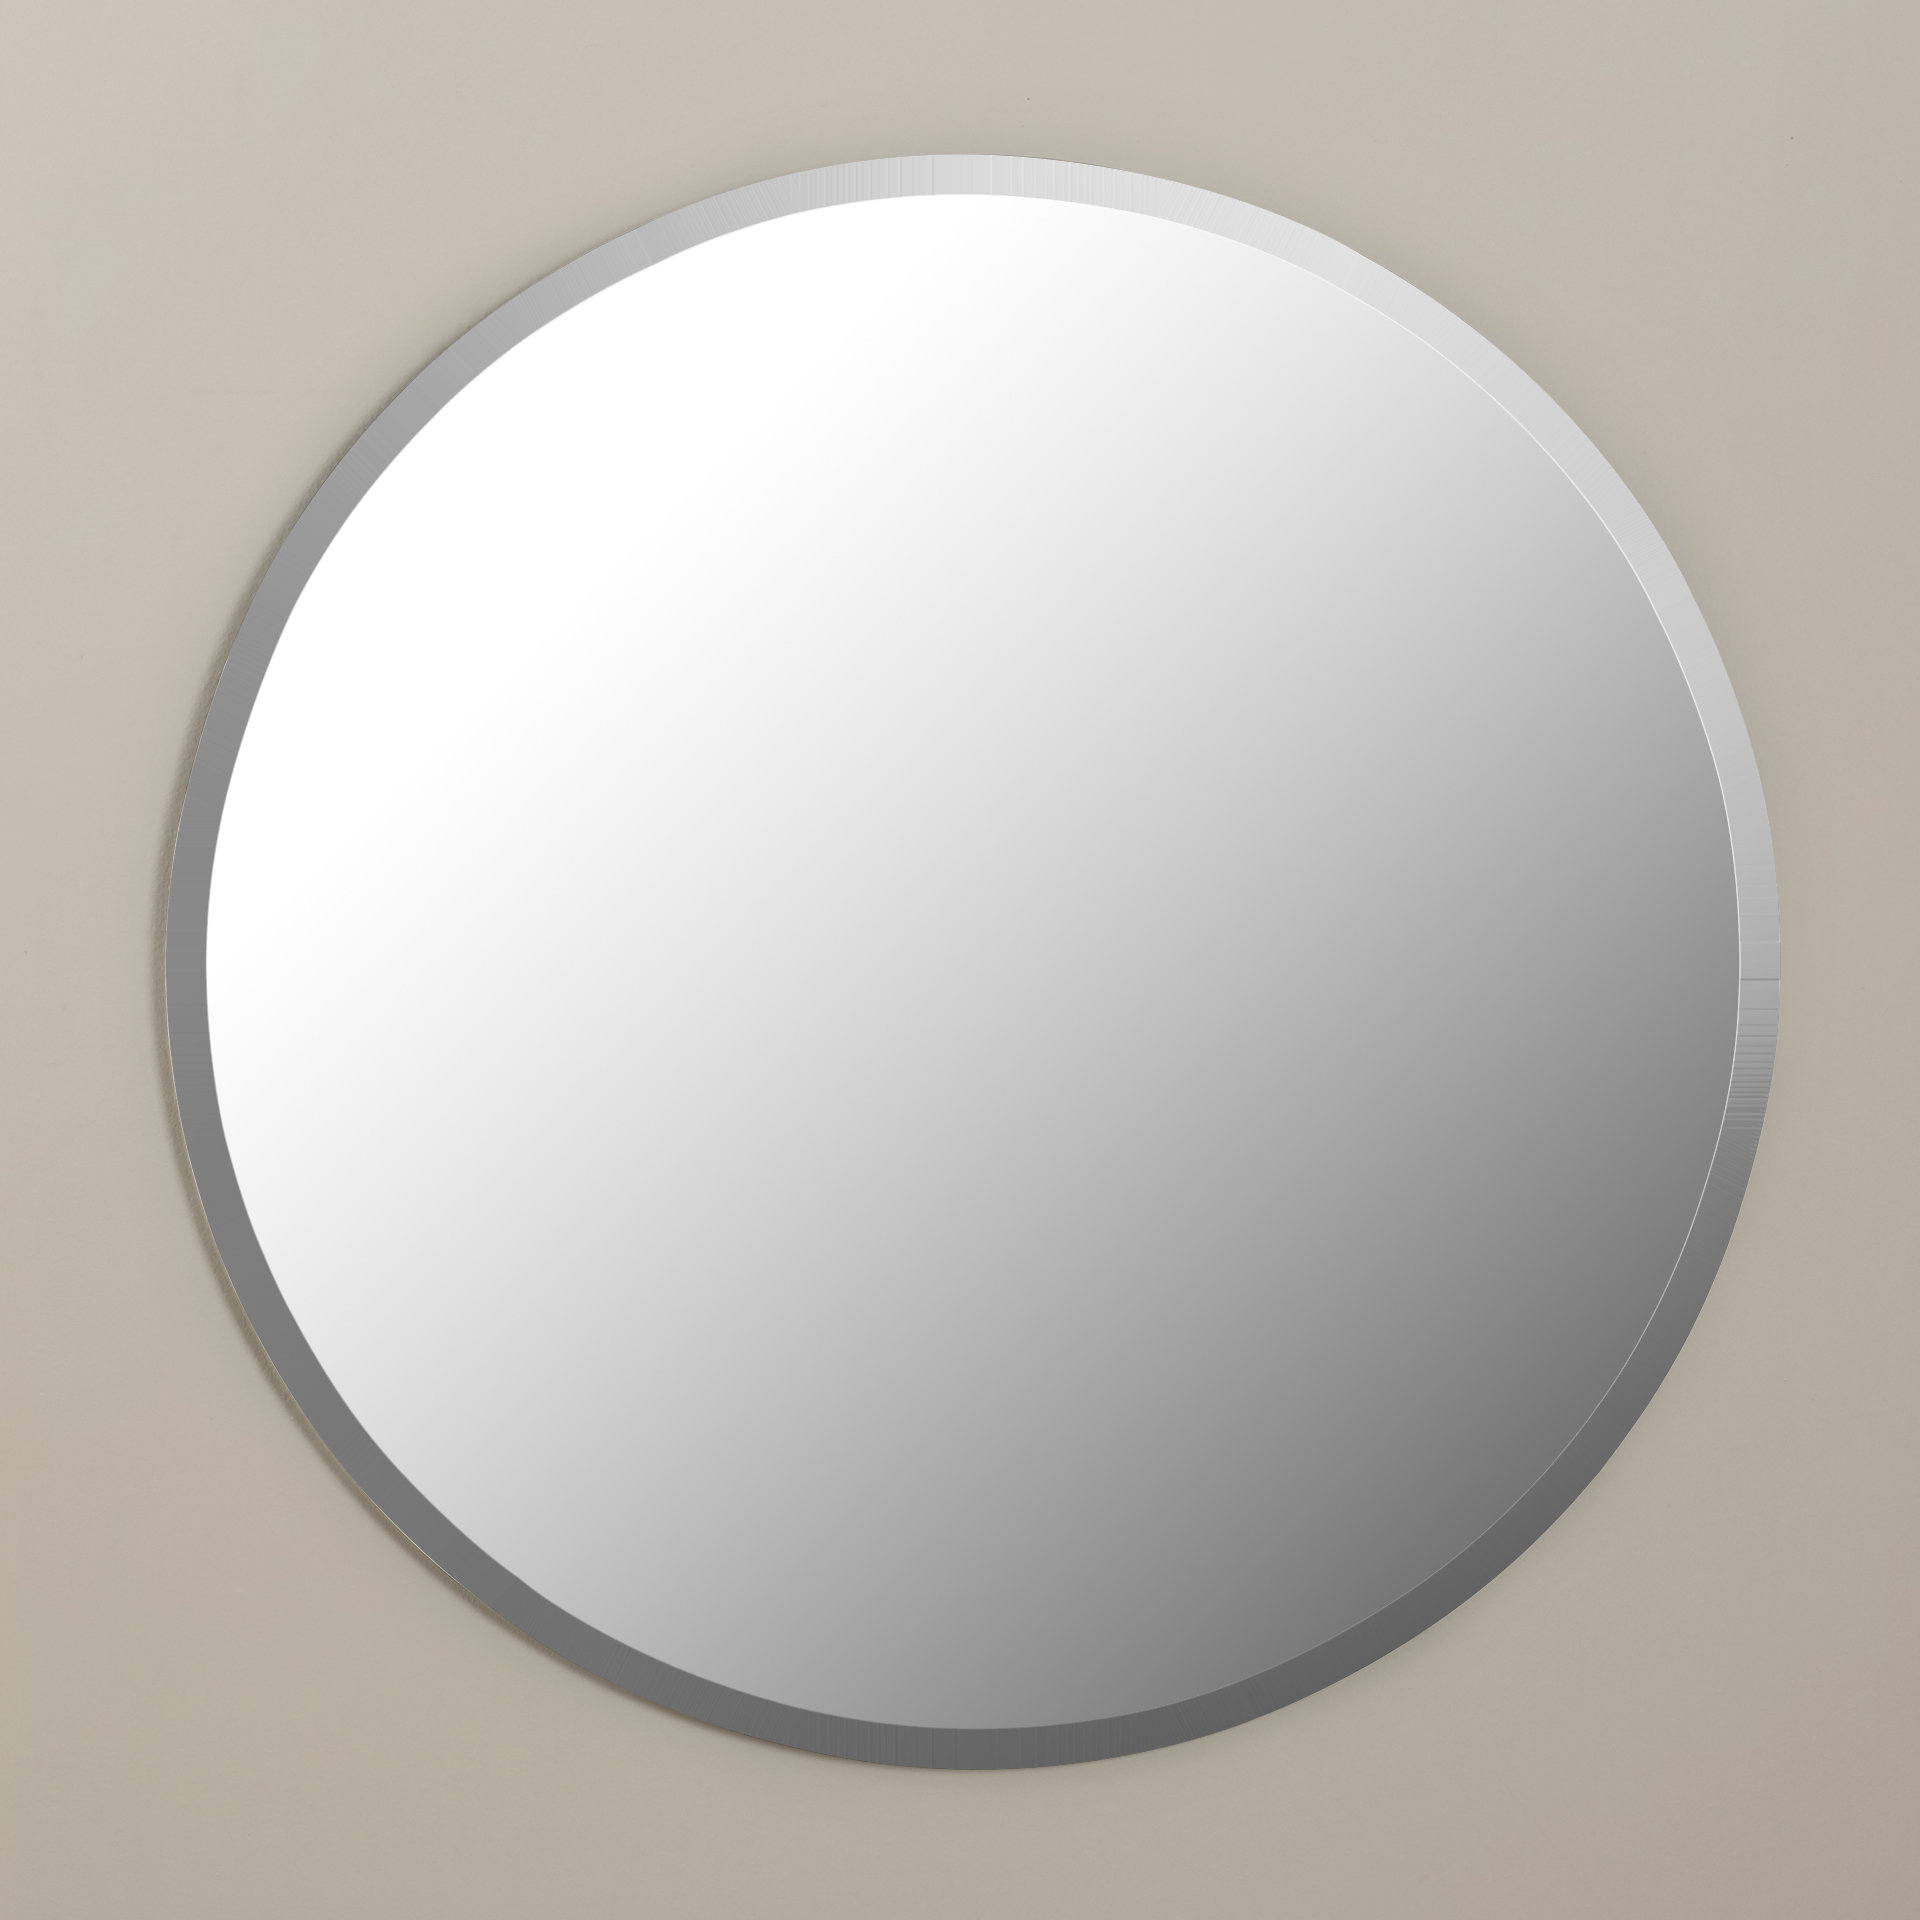 Kayden Accent Mirrors Intended For Favorite Kayden Accent Mirror (View 14 of 20)